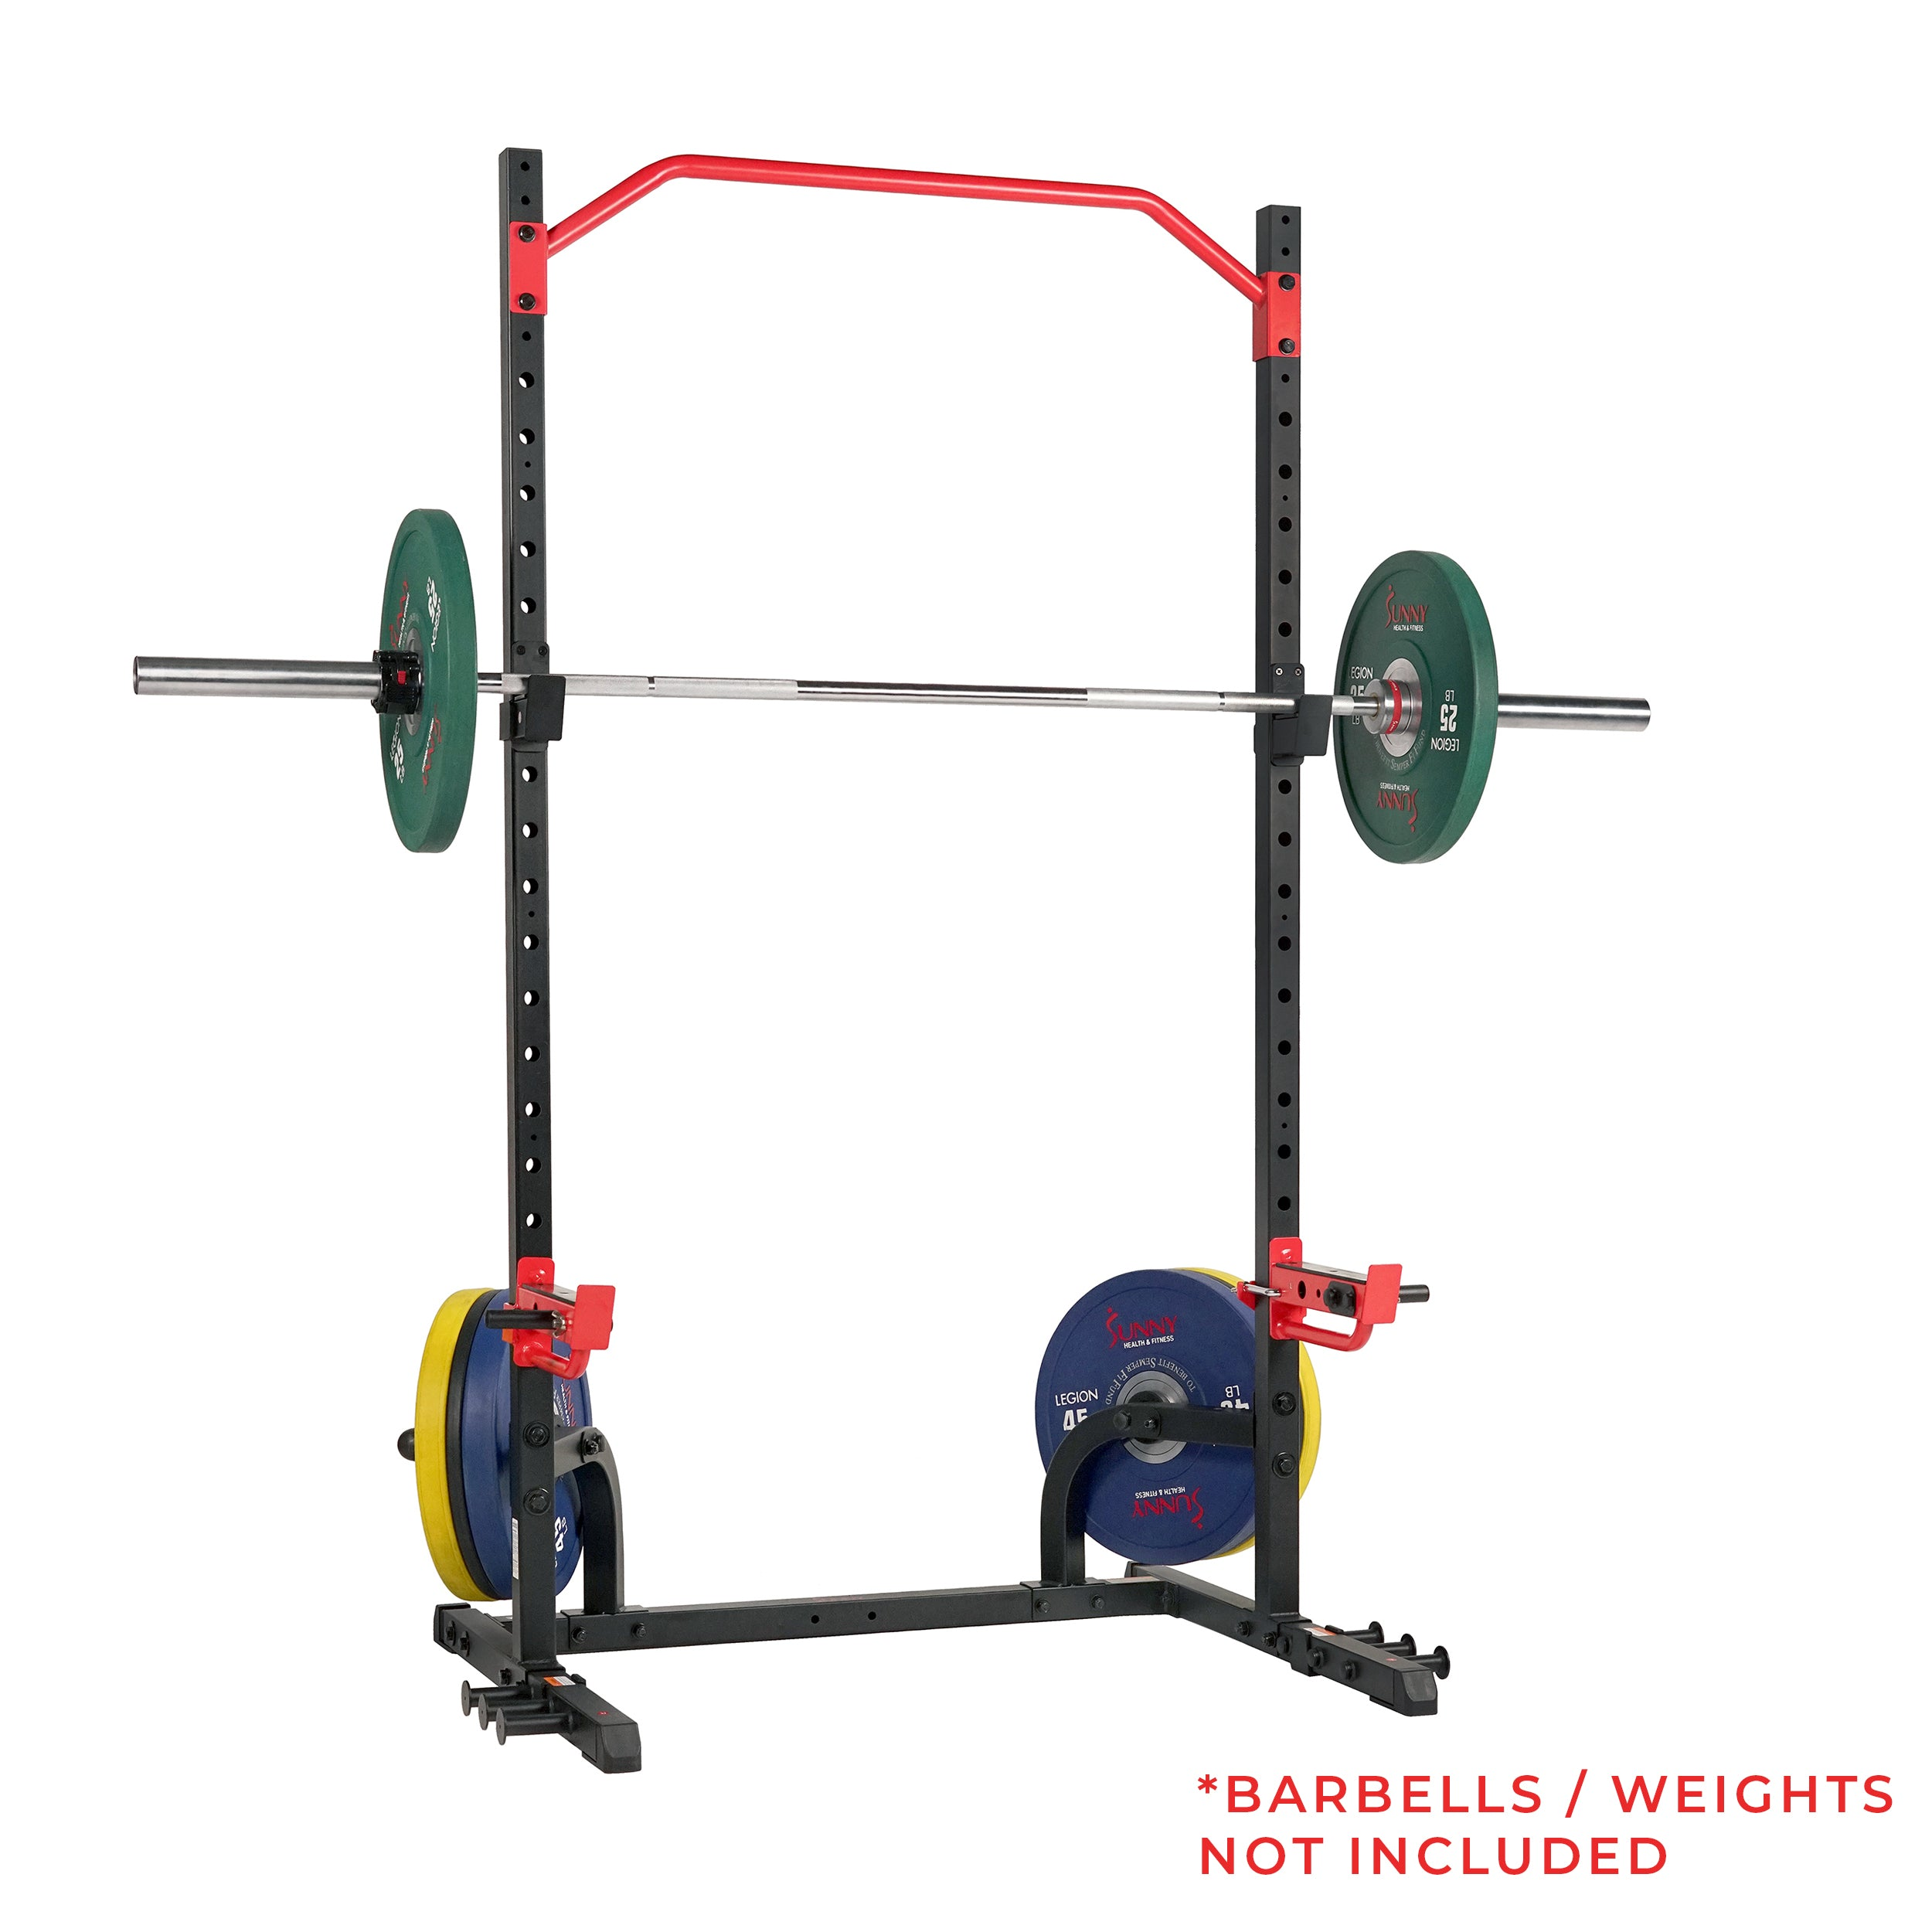 sunny-health-fitness-strength-fully-adjustable-power-zone-utility-heavy-duty-weight-bench-with-1000-lb-max-weight-SF-BH6920-compatible